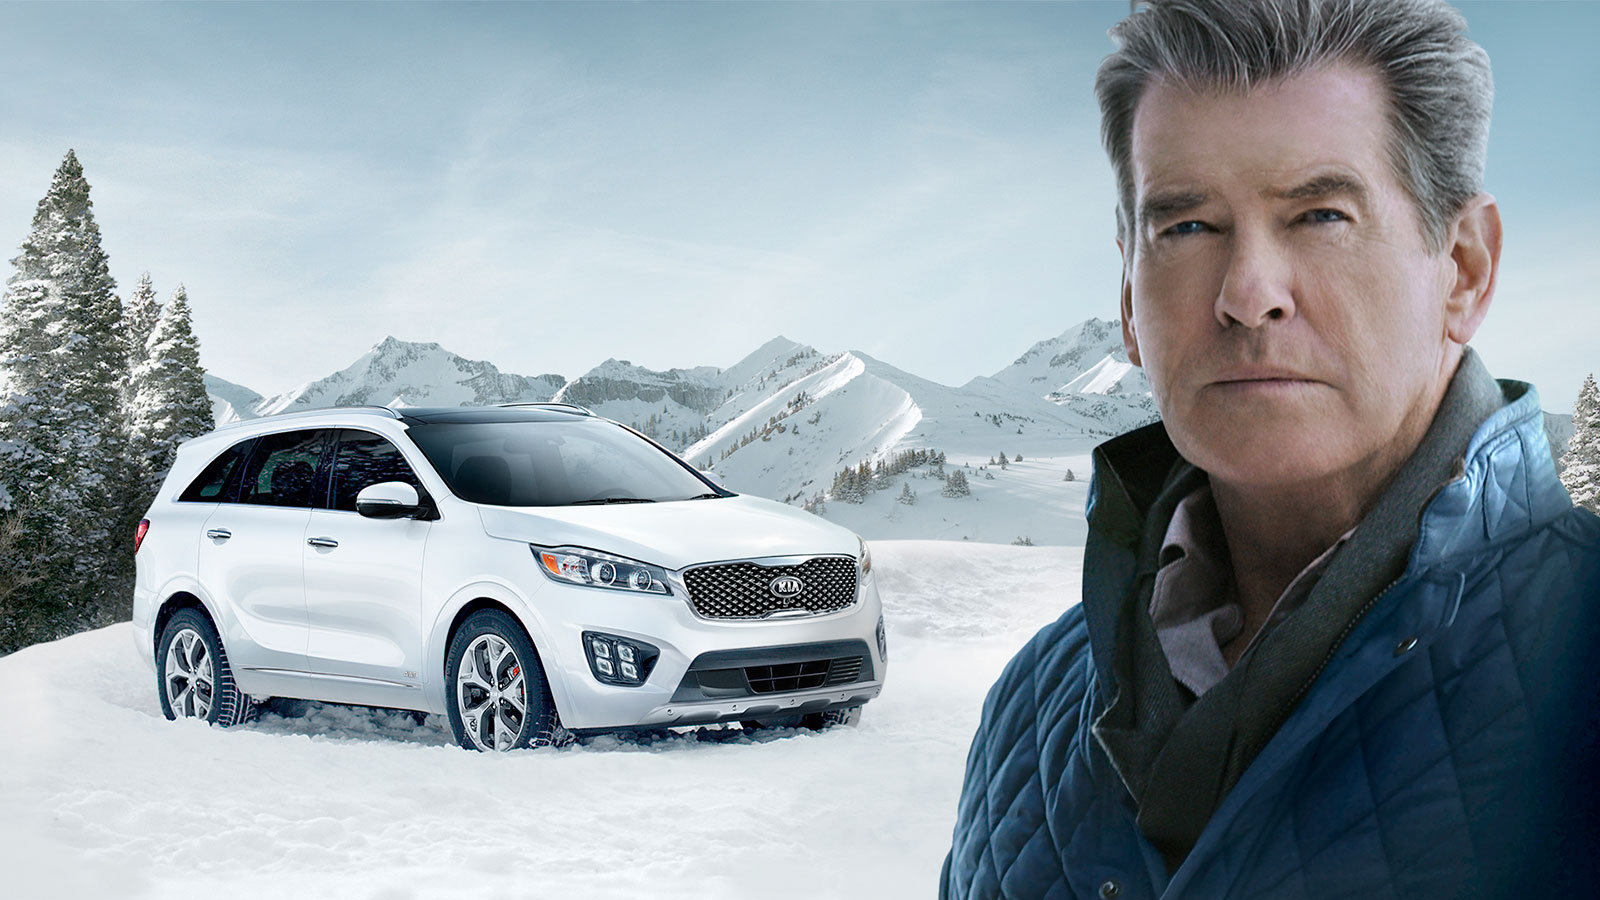 Pierce Brosnan makes #PerfectGetaway in Kia Sorento Super Bowl Ad